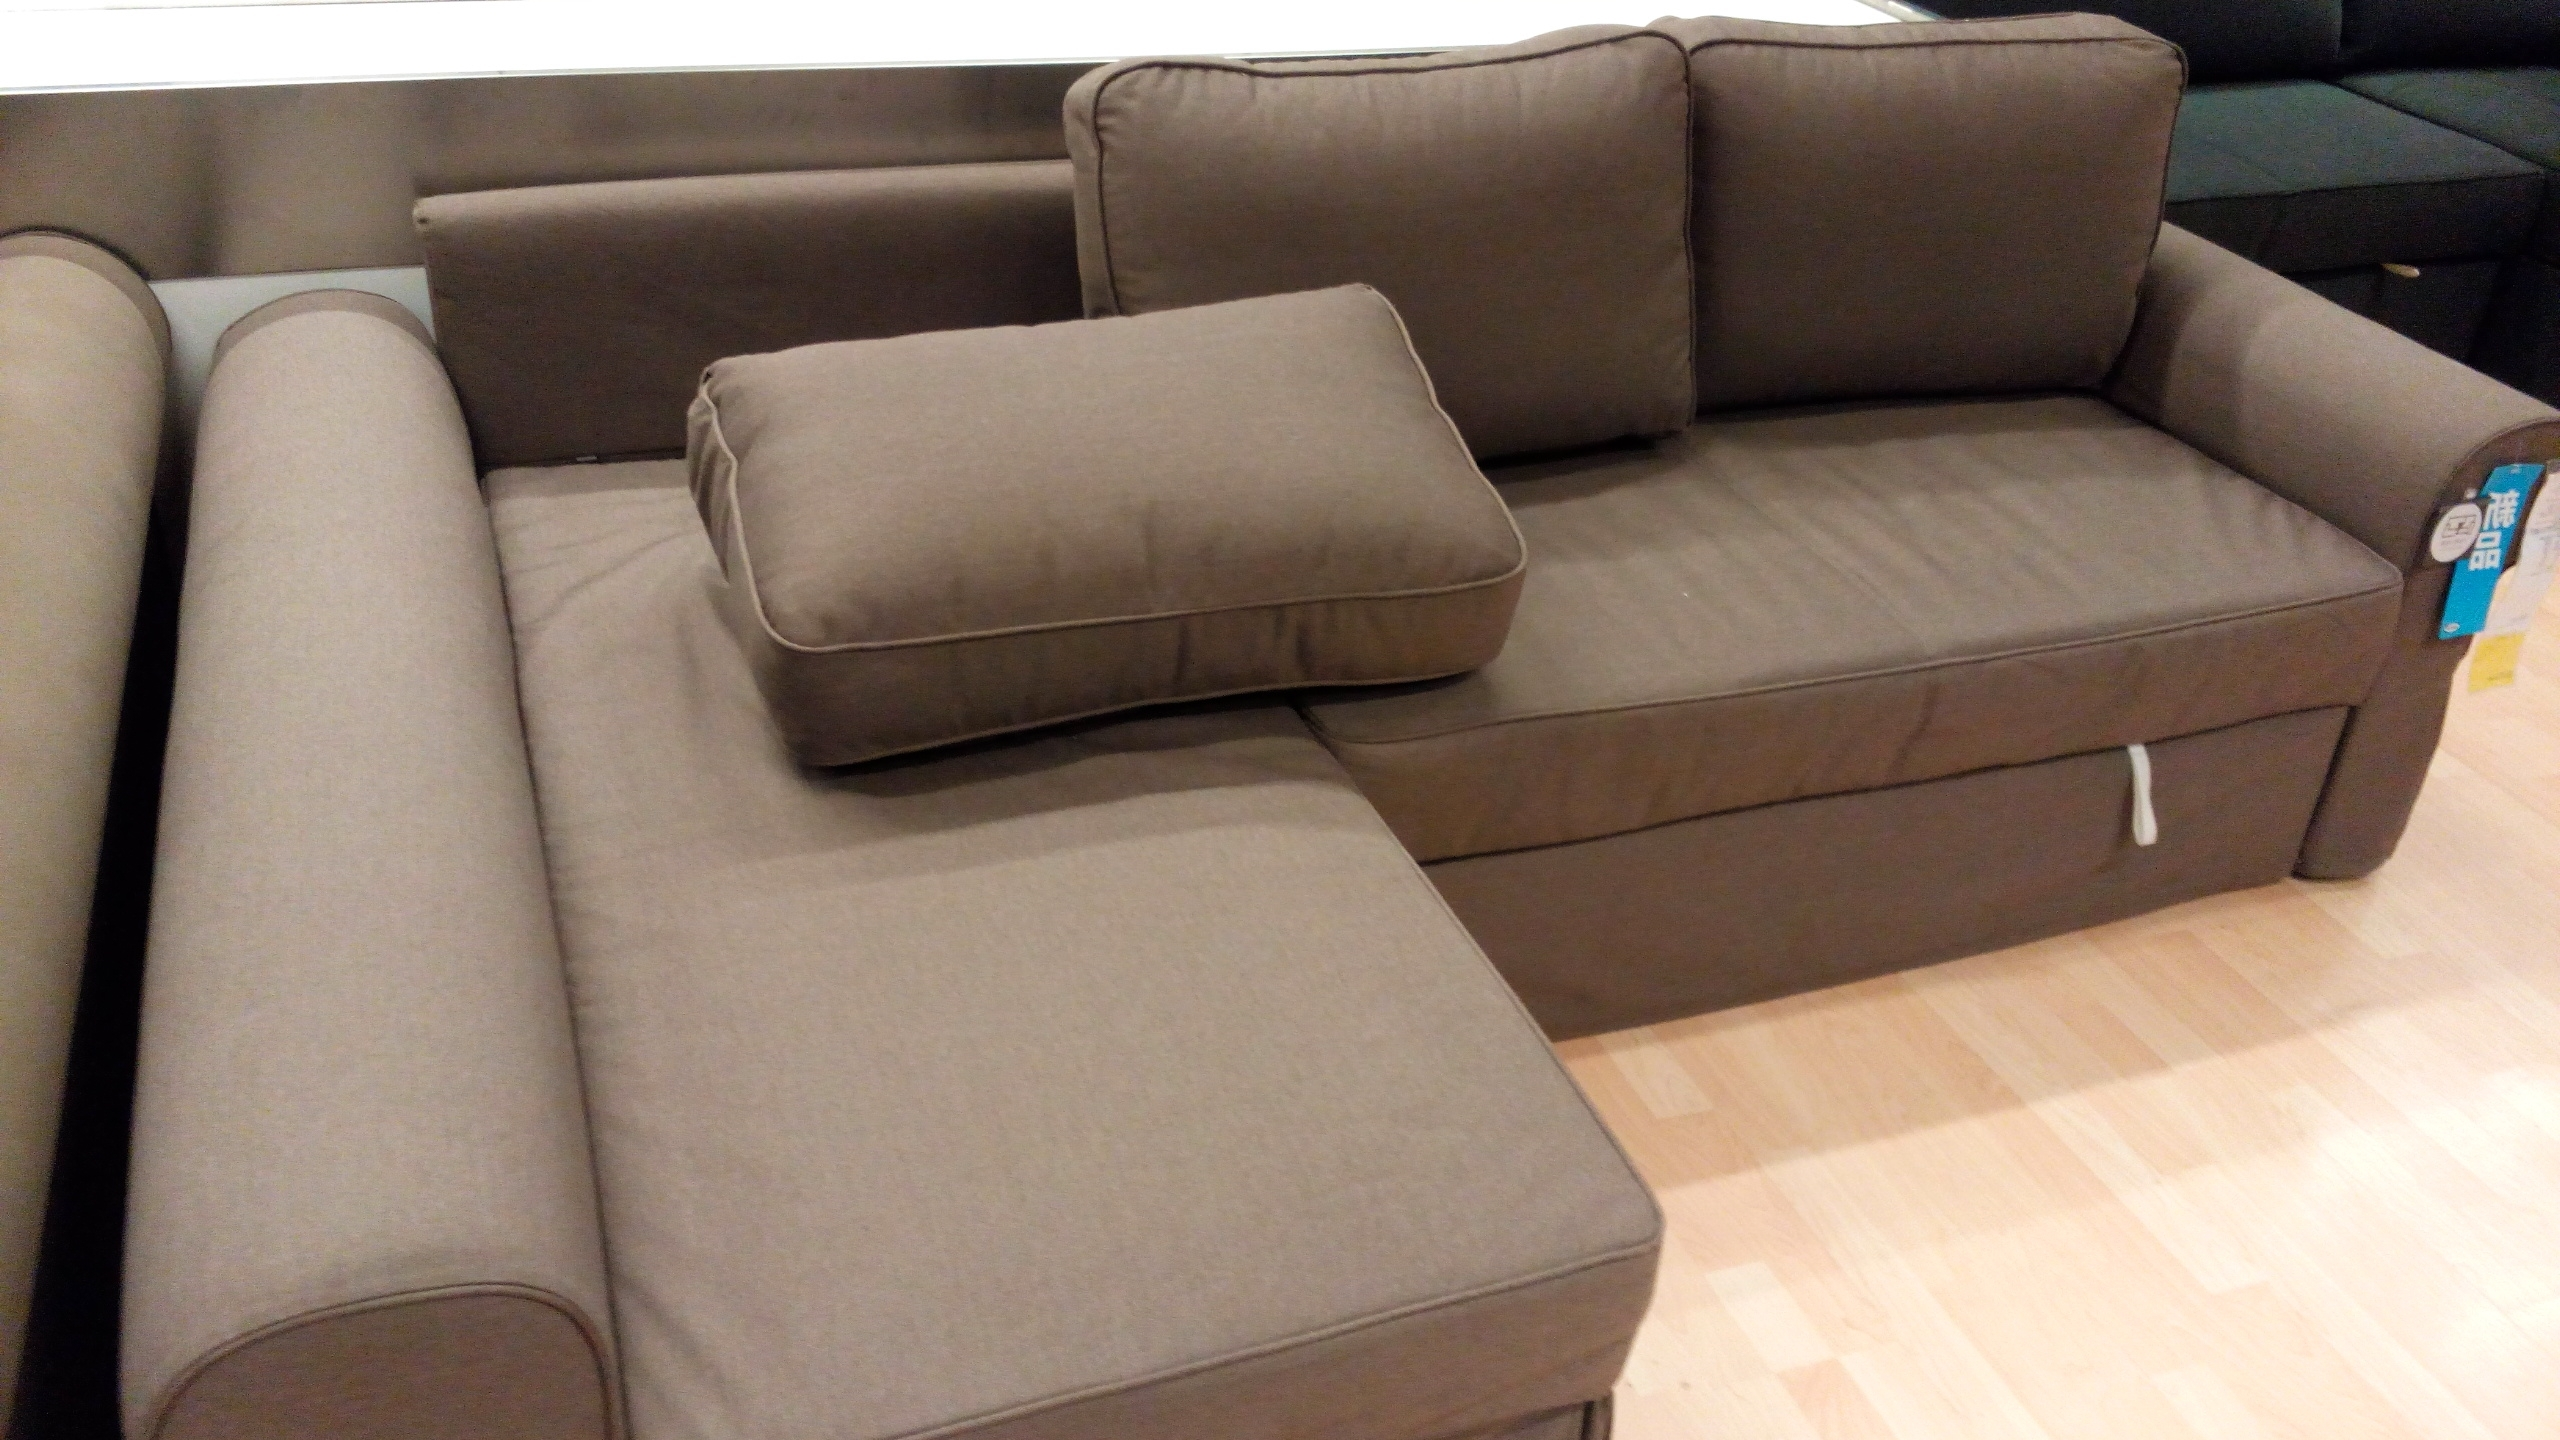 Most Recently Released Ikea Sofa Beds With Chaise With Regard To Ikea Vilasund And Backabro Review – Return Of The Sofa Bed Clones! (View 12 of 15)